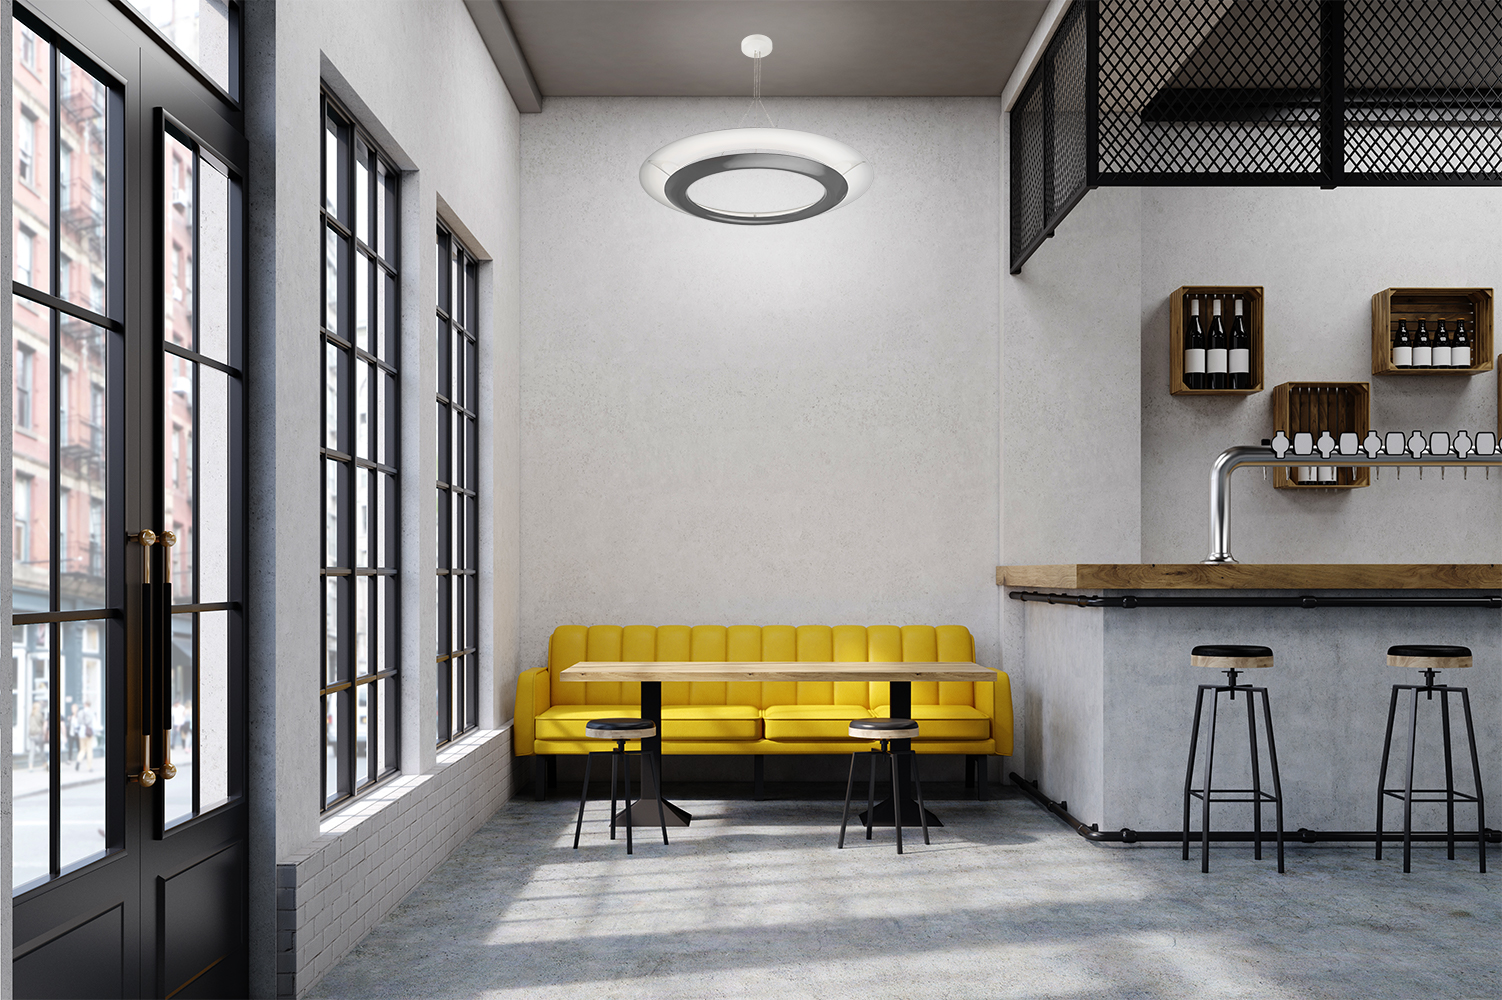 Cosmo ring pendants are perfect for commercial lighting applications, seen here above a yellow couch in a modern bar